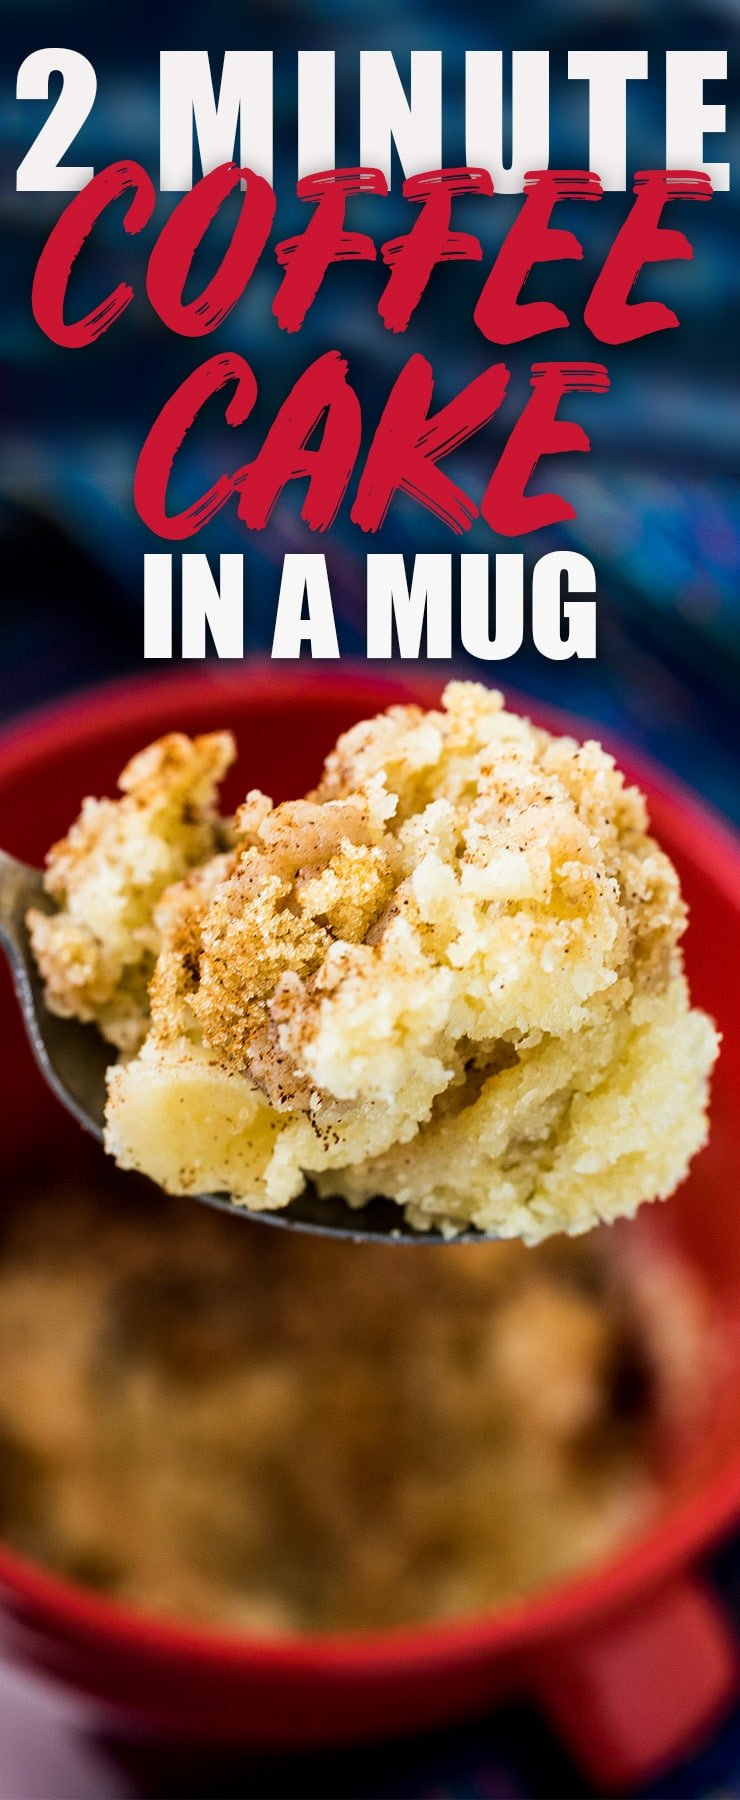 This coffee cake in a mug is made in the microwave and makes for an easy fix for your sweet tooth! My recipe uses no egg and is topped with a cinnamon streusel that is to do for! Everyone that makes is can't believe how fluffy and moist it is!